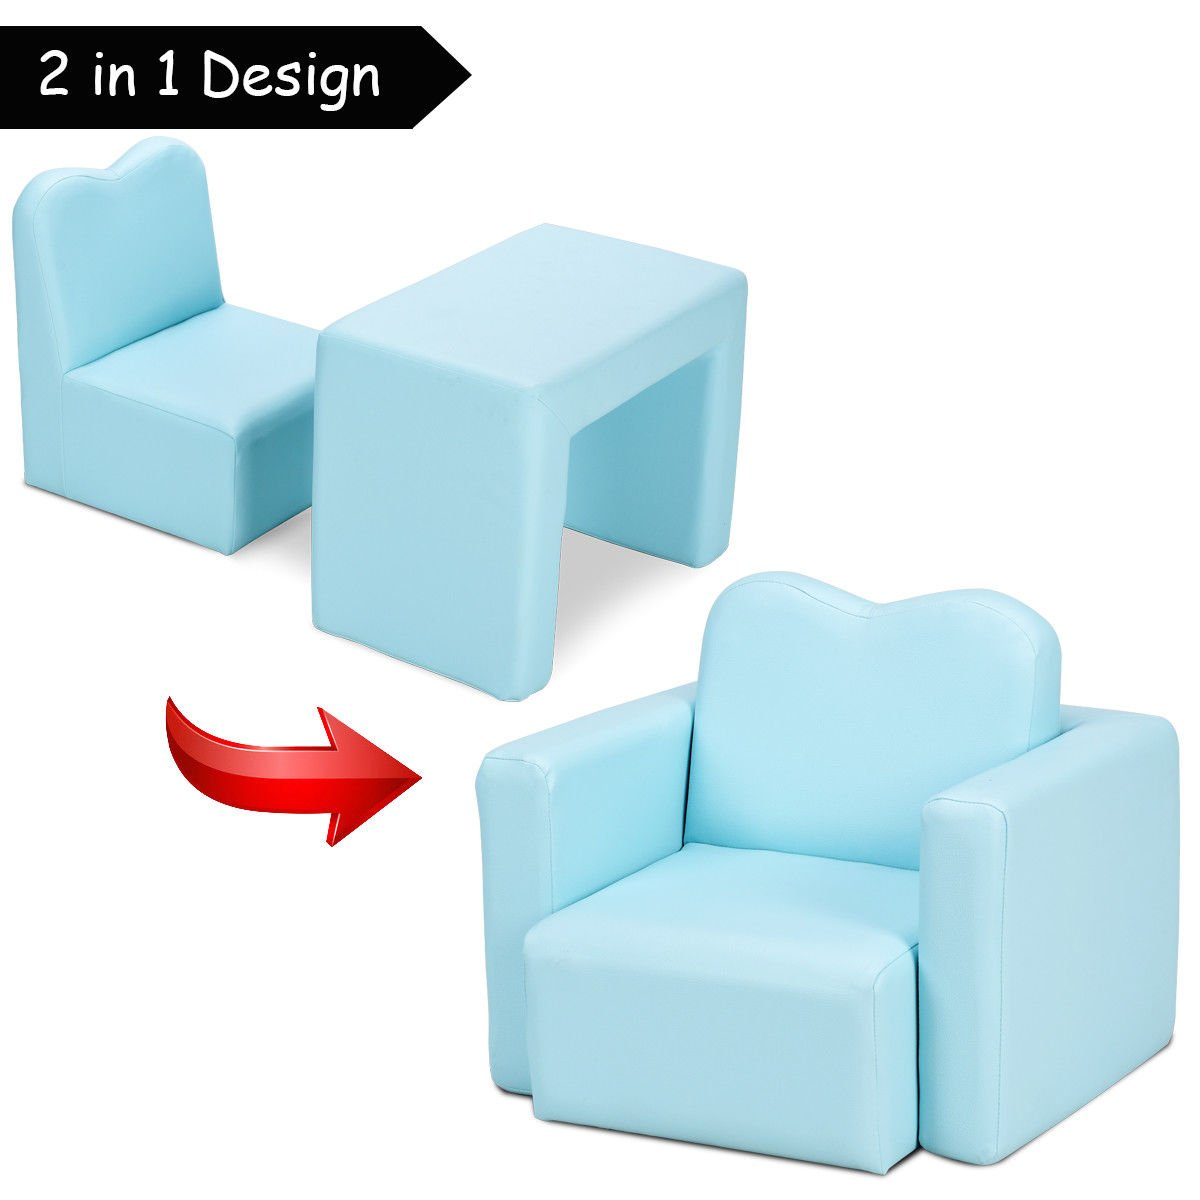 Costzon Kids Sofa, 2-in-1 Multi-Functional Kids Table & Chair Set, Sturdy Wood Construction, Armrest Chair for Boys & Girls (Blue) by Costzon (Image #2)